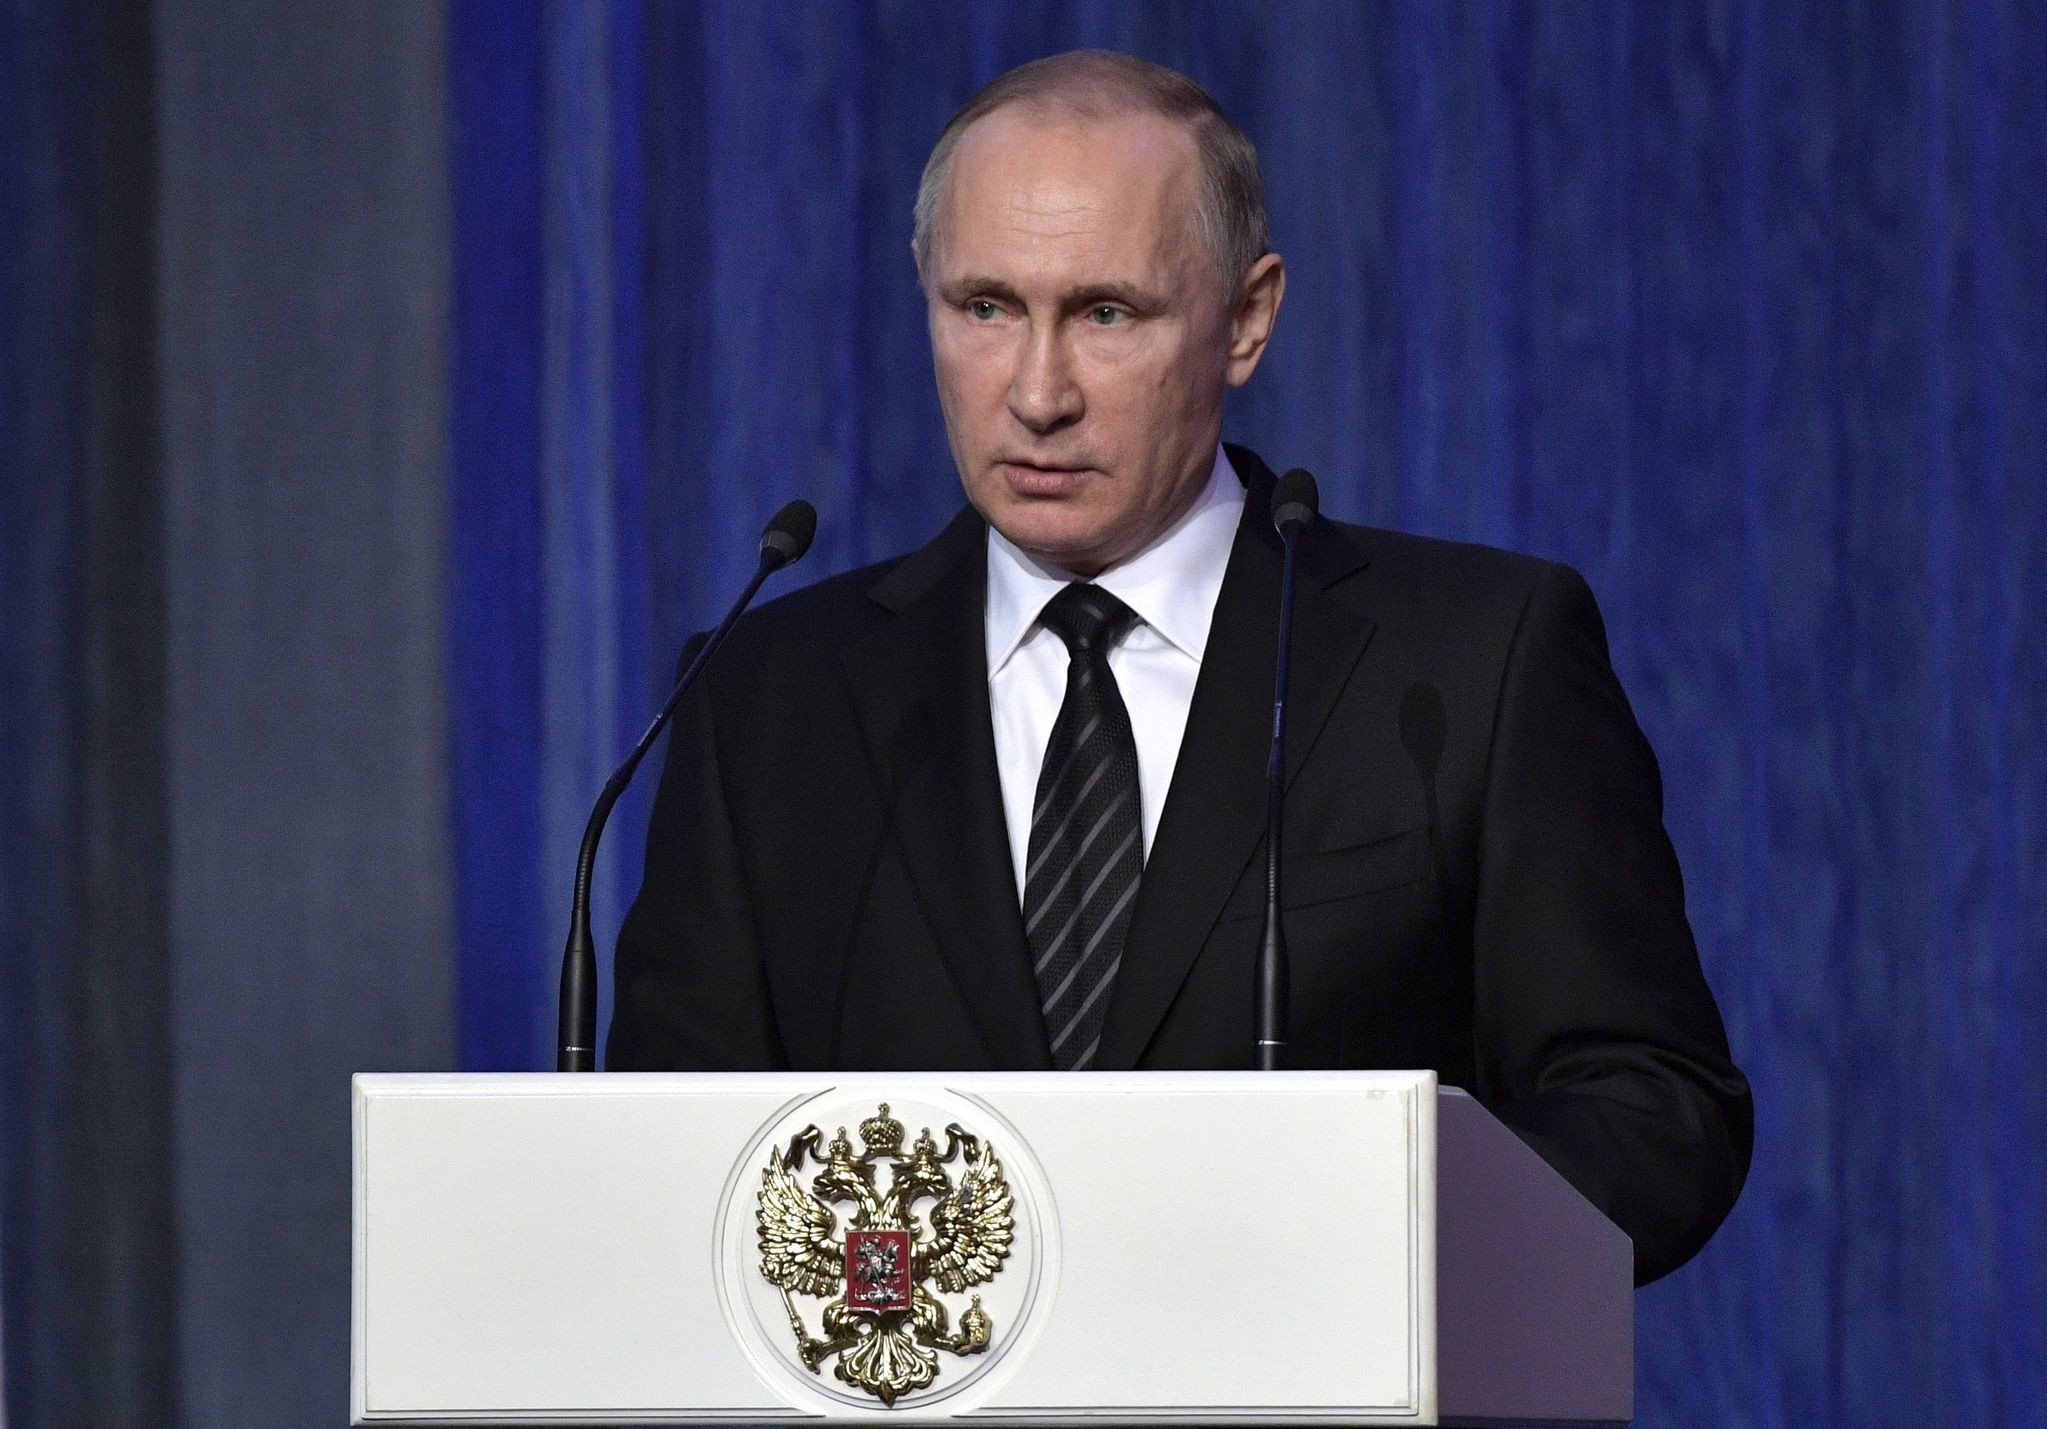 Russian President Vladimir Putin speaks during a gala evening devoted to the Day of Security Workers at the State Kremlin Palace in Moscow on Dec. 20, 2016. (AFP Photo)